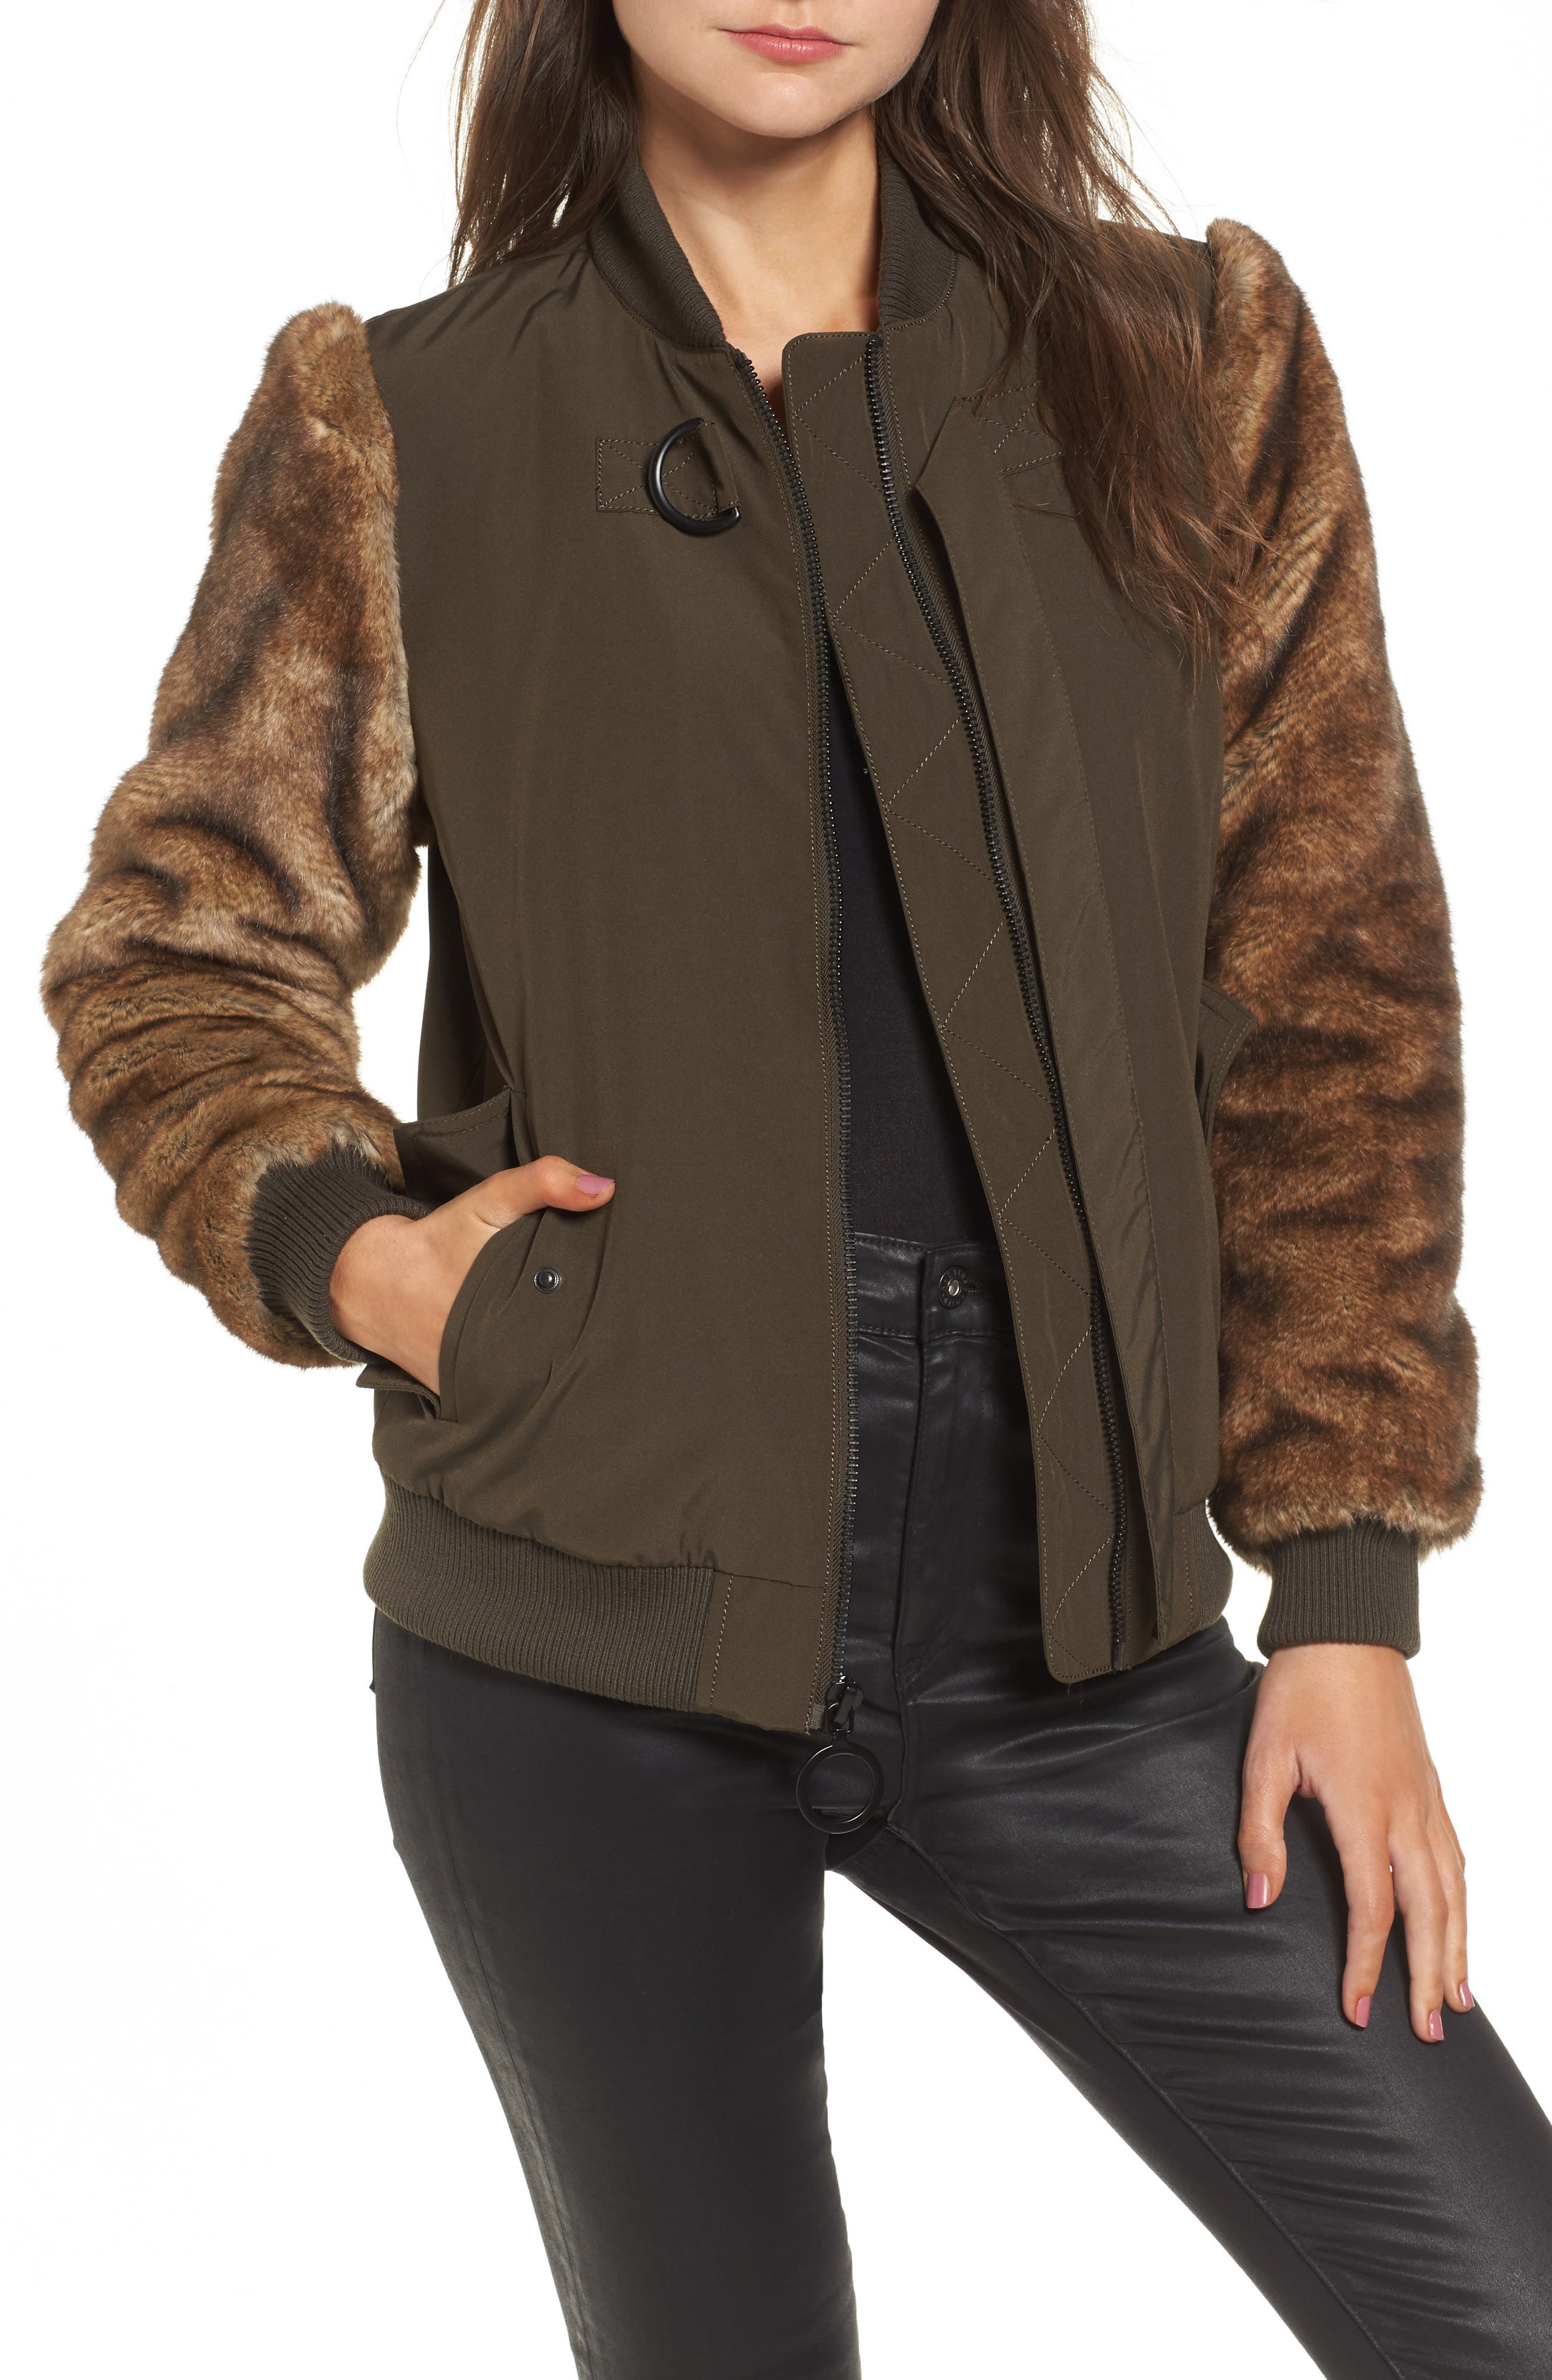 Alternate Image 1 Selected - KENDALL + KYLIE Faux Fur Sleeve Bomber Jacket